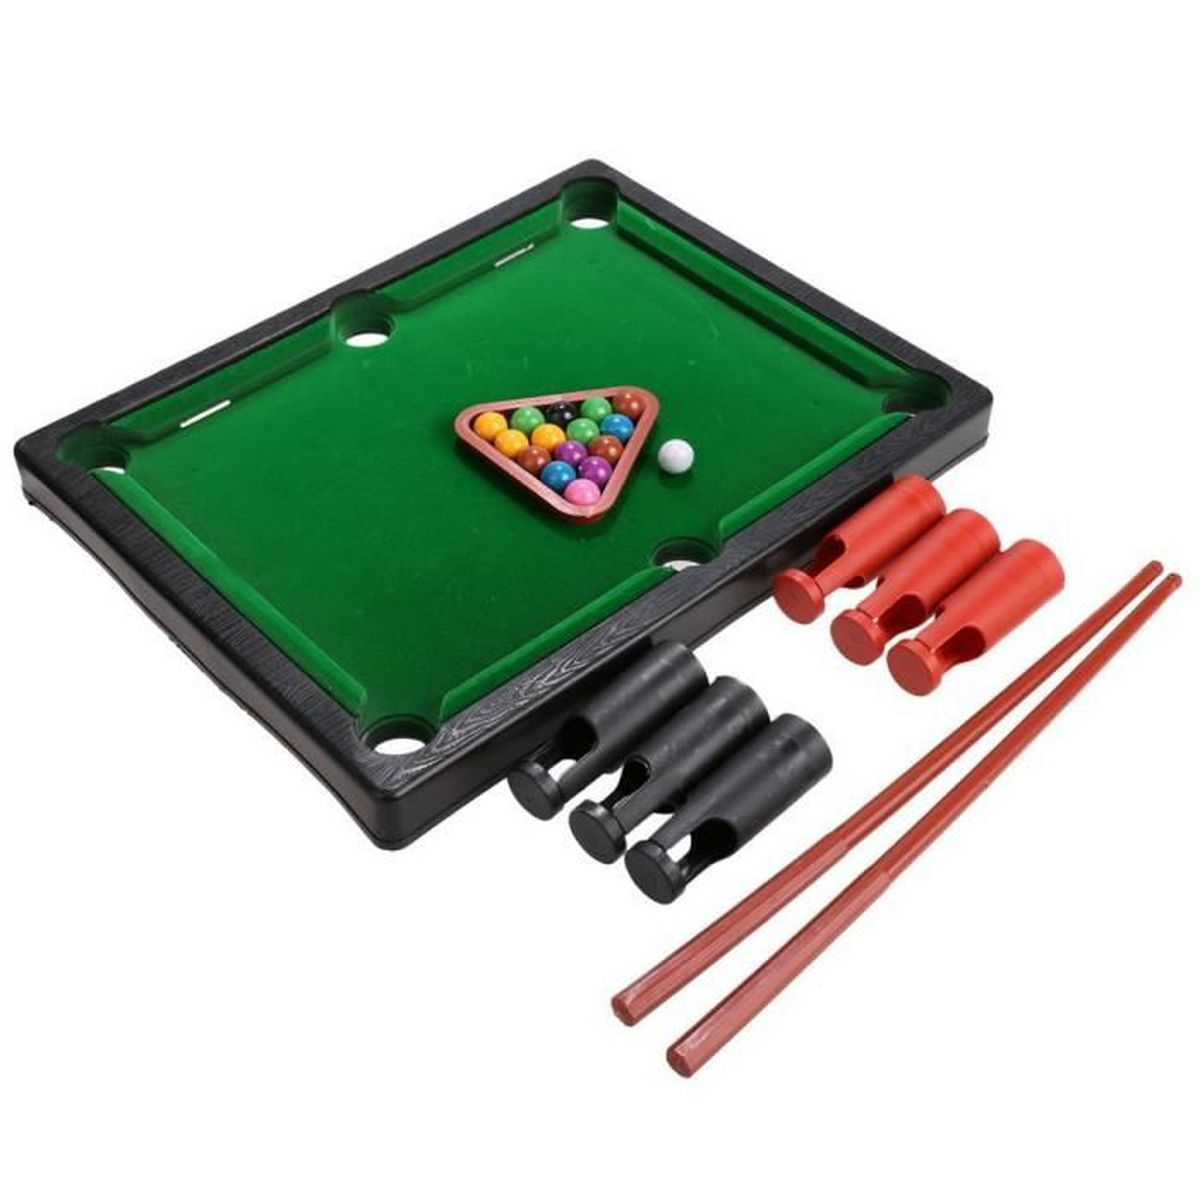 mini billard de jeu avec des rep res tr pied boules mini billard de jeu enfant achat vente. Black Bedroom Furniture Sets. Home Design Ideas